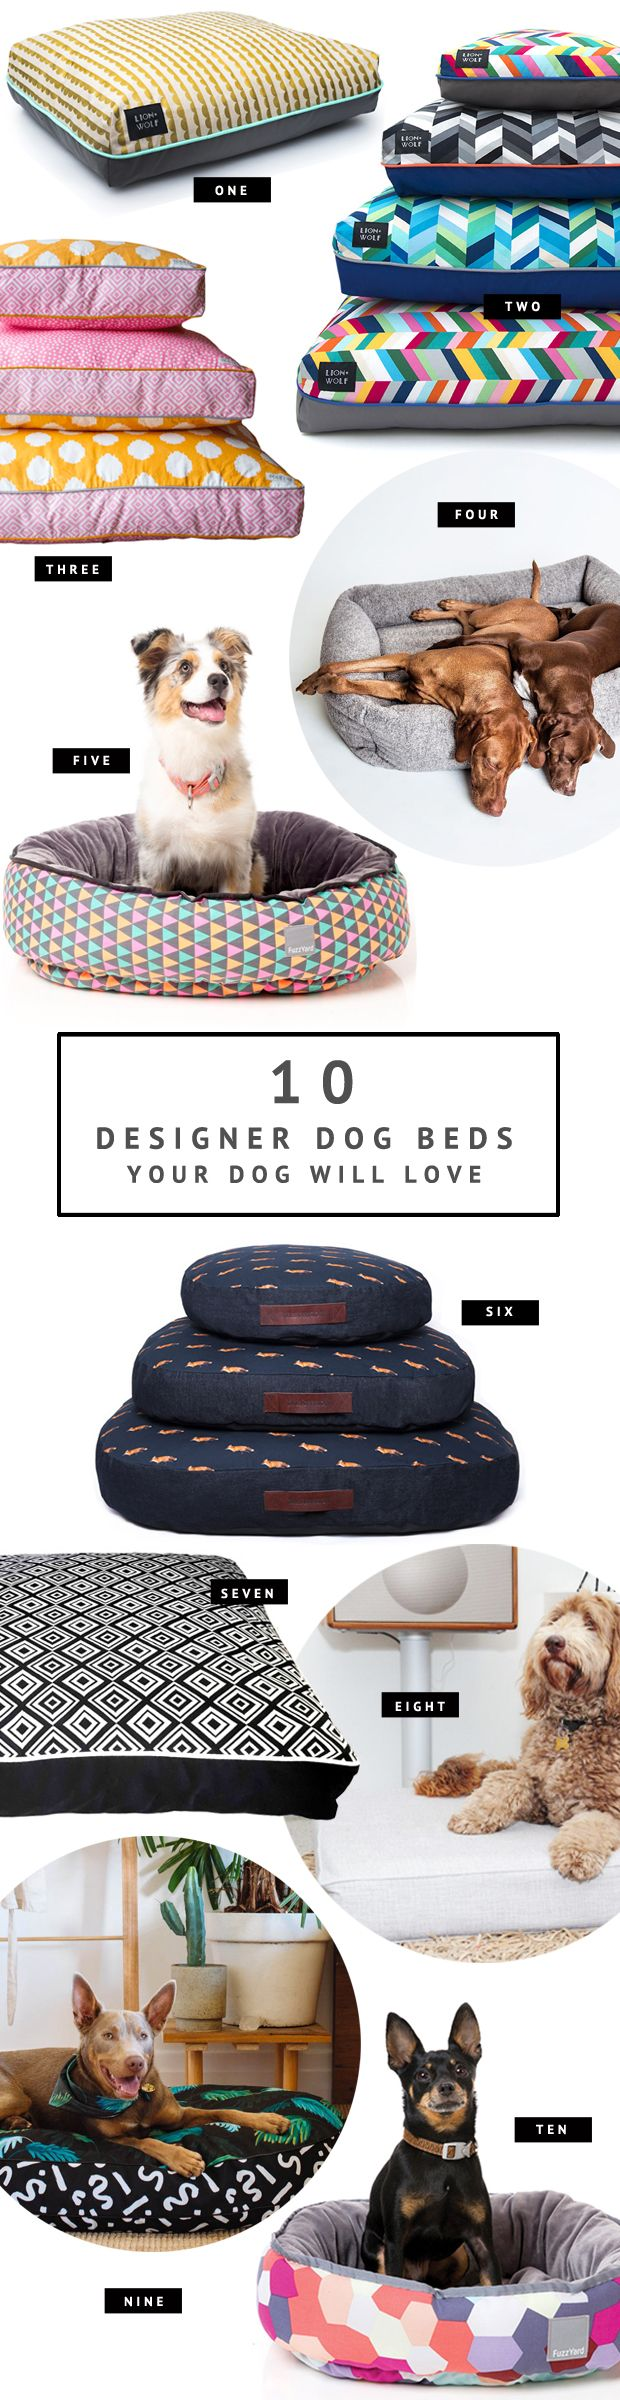 best monika images on pinterest pets dog accessories and pet beds